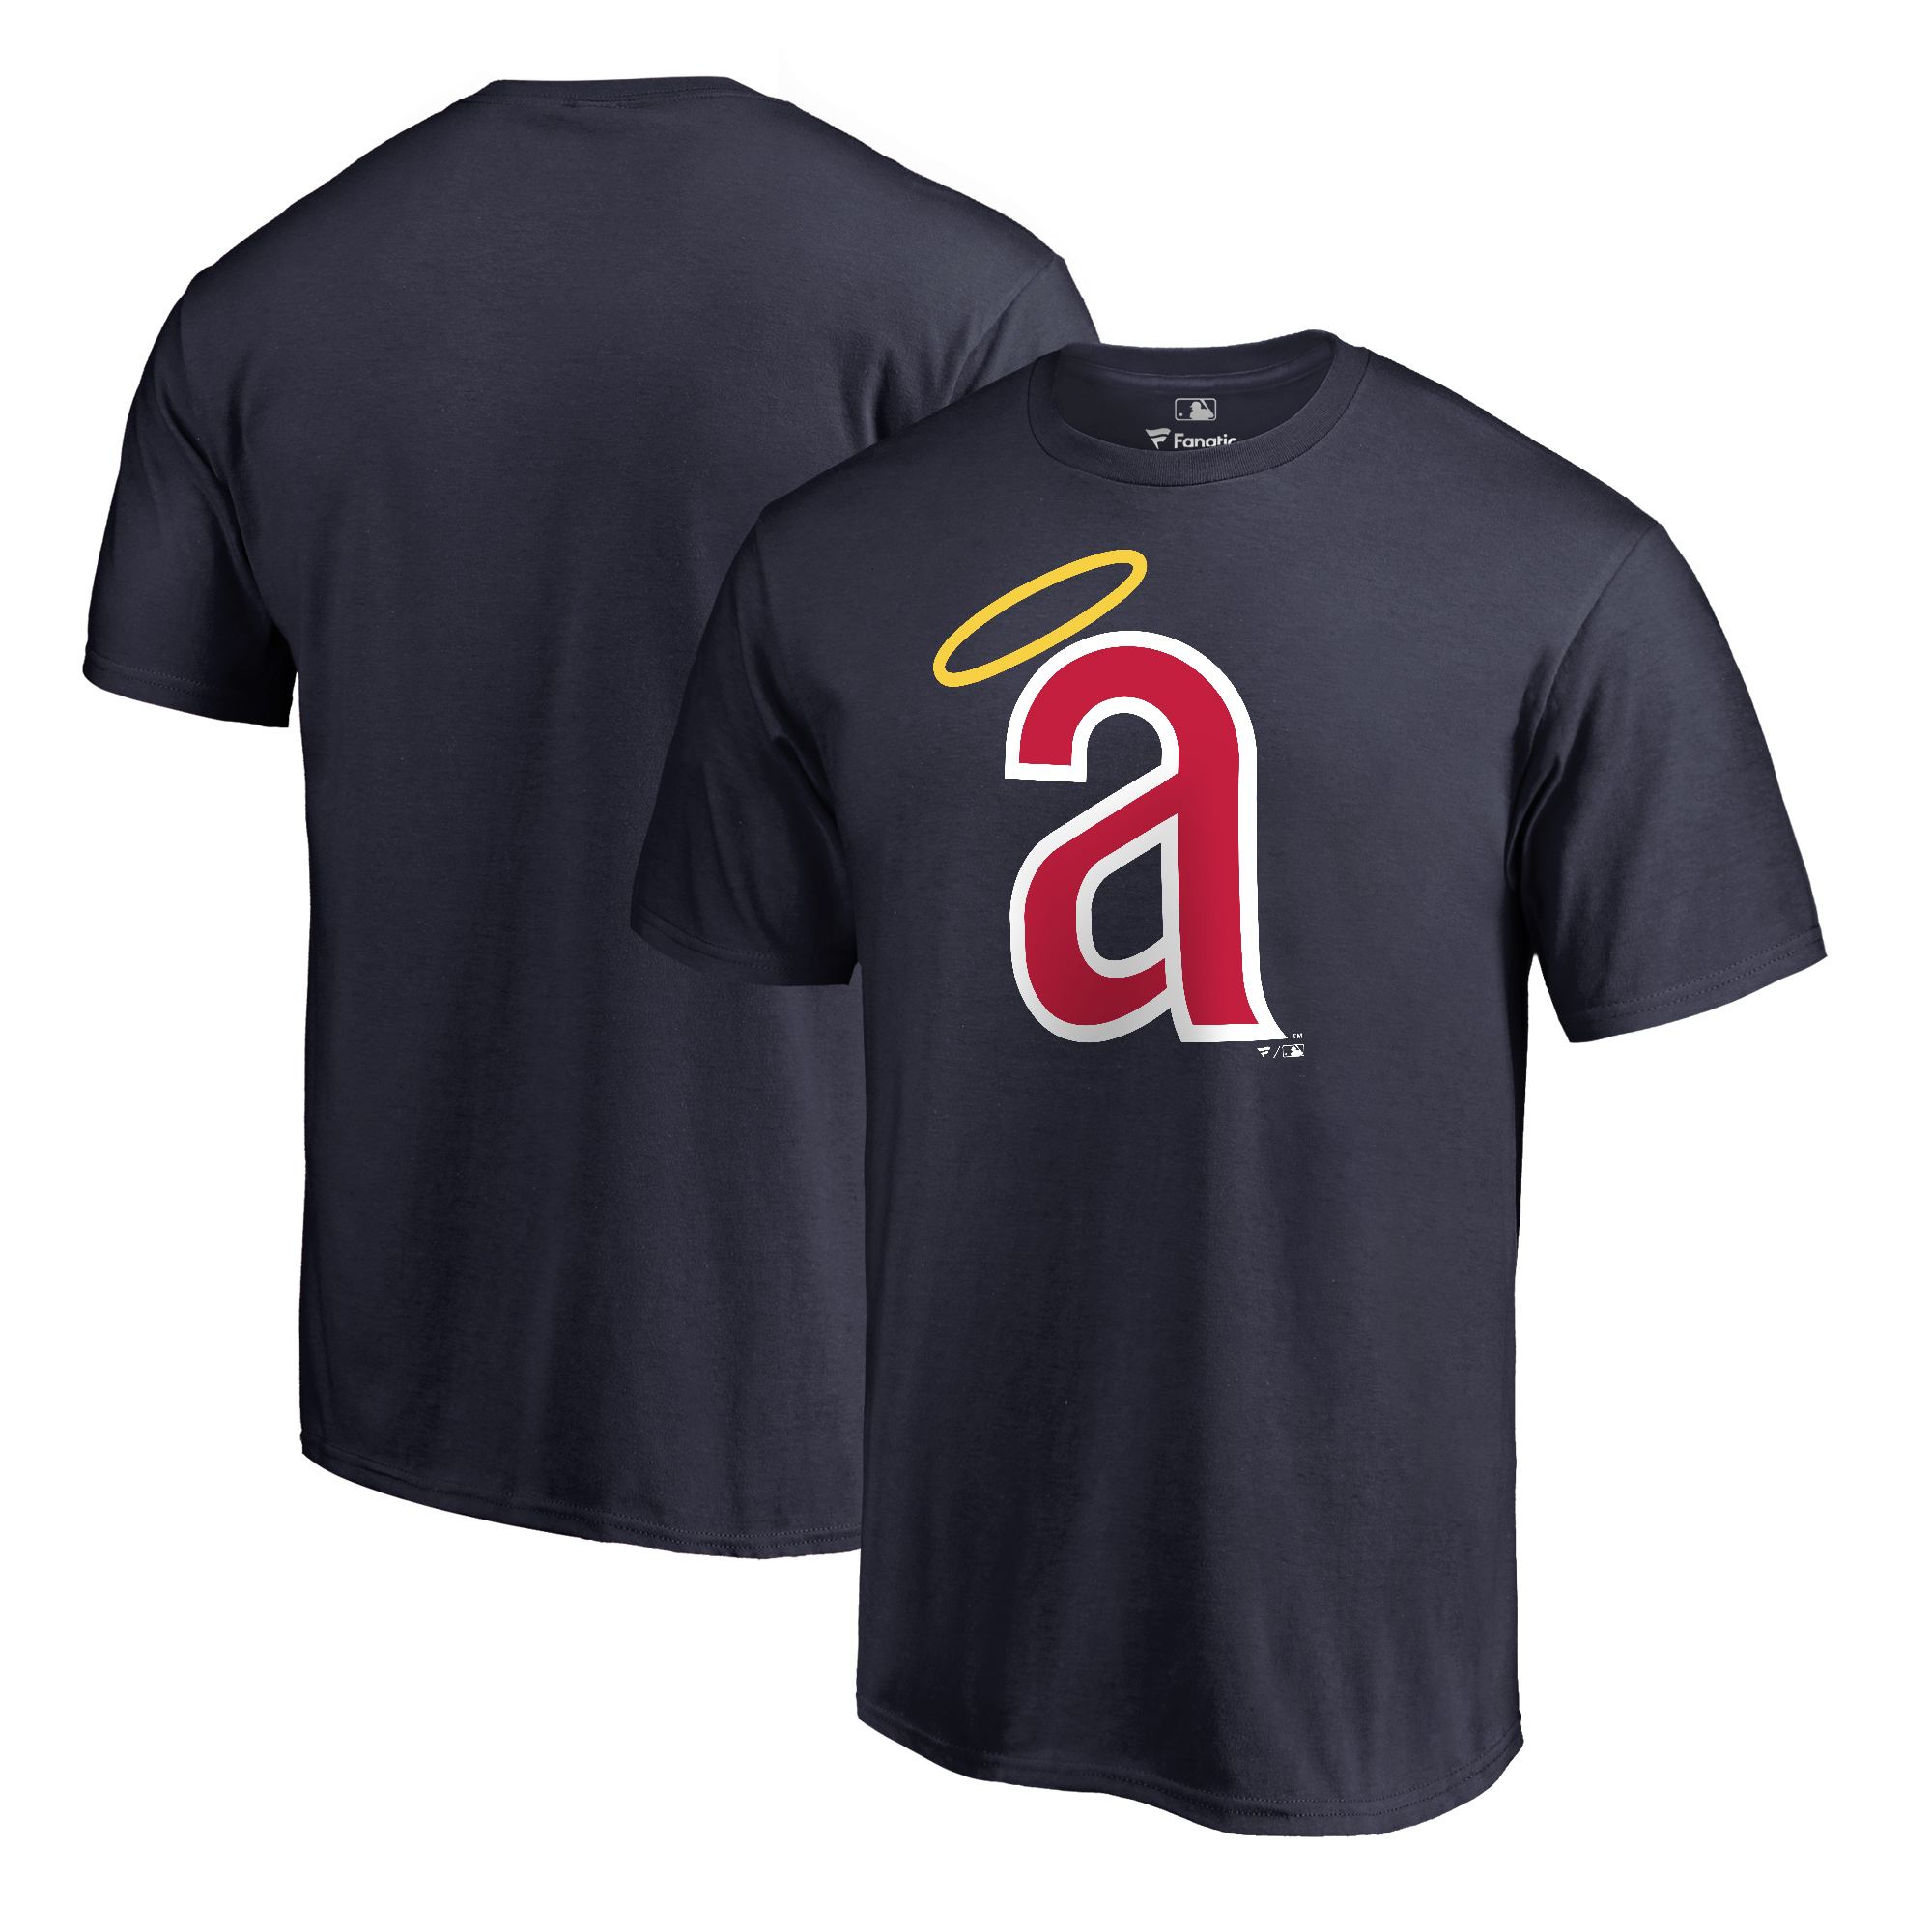 Los Angeles Angels Fanatics Branded Cooperstown Collection Huntington T-Shirt - Navy